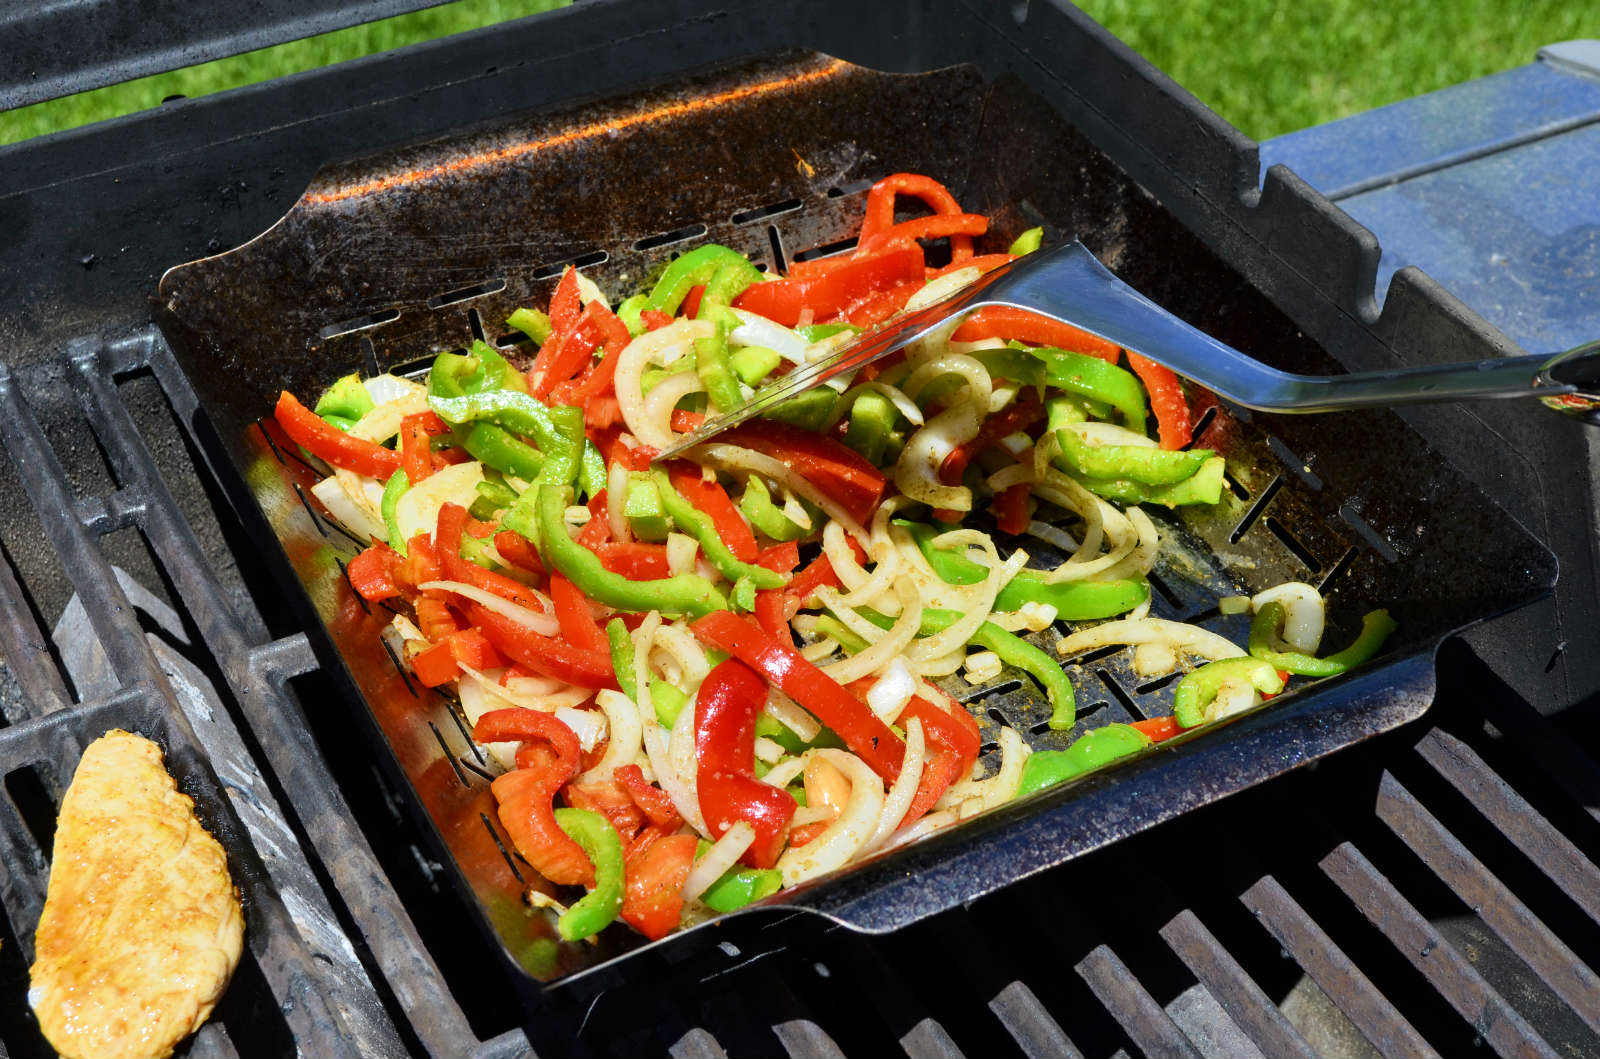 Veggies on the grill